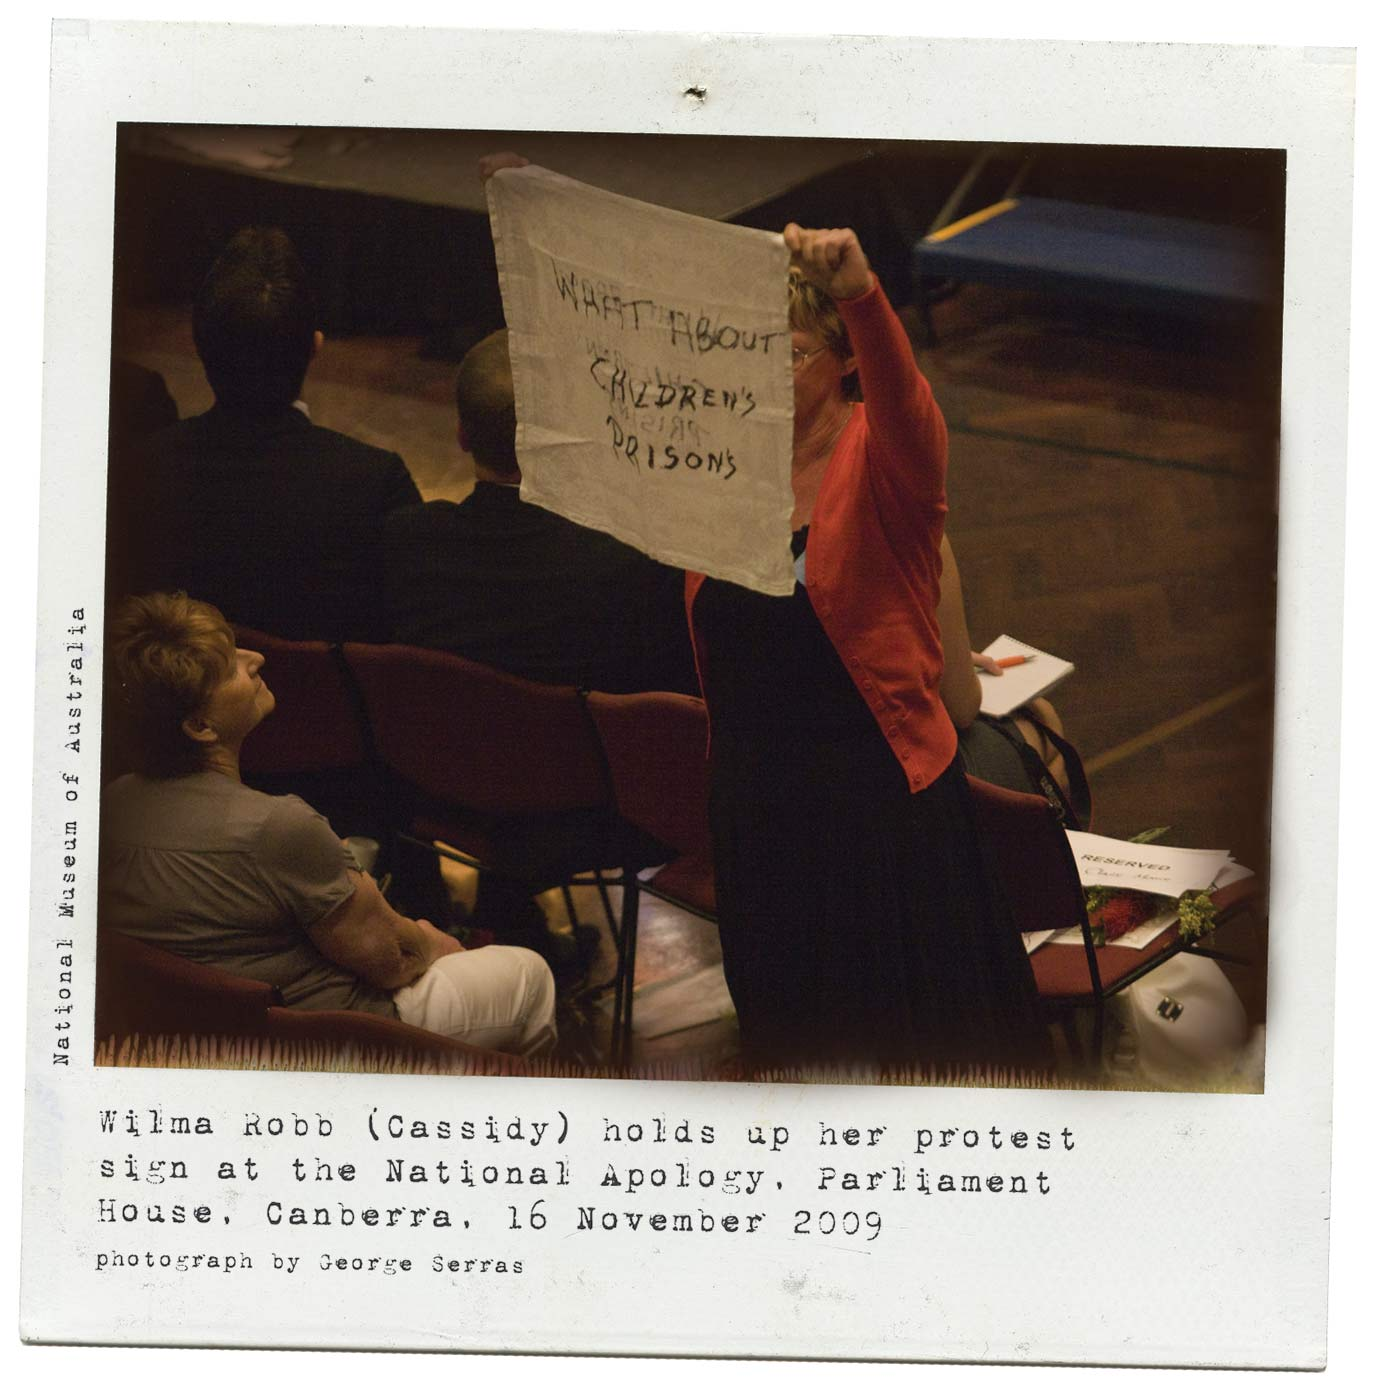 A colour Polaroid photo of a woman, standing and holding a white piece of fabric in raised arms. 'WHAT ABOUT CHILDREN'S PRISONS' is written on the fabric in black texta. Typewritten text below reads 'Wilma Robb )Cassidy) holds up her protest sign at the National Apology, Parliament House, Canberra, 16 November 2009. Photograph by George Serras'. - click to view larger image